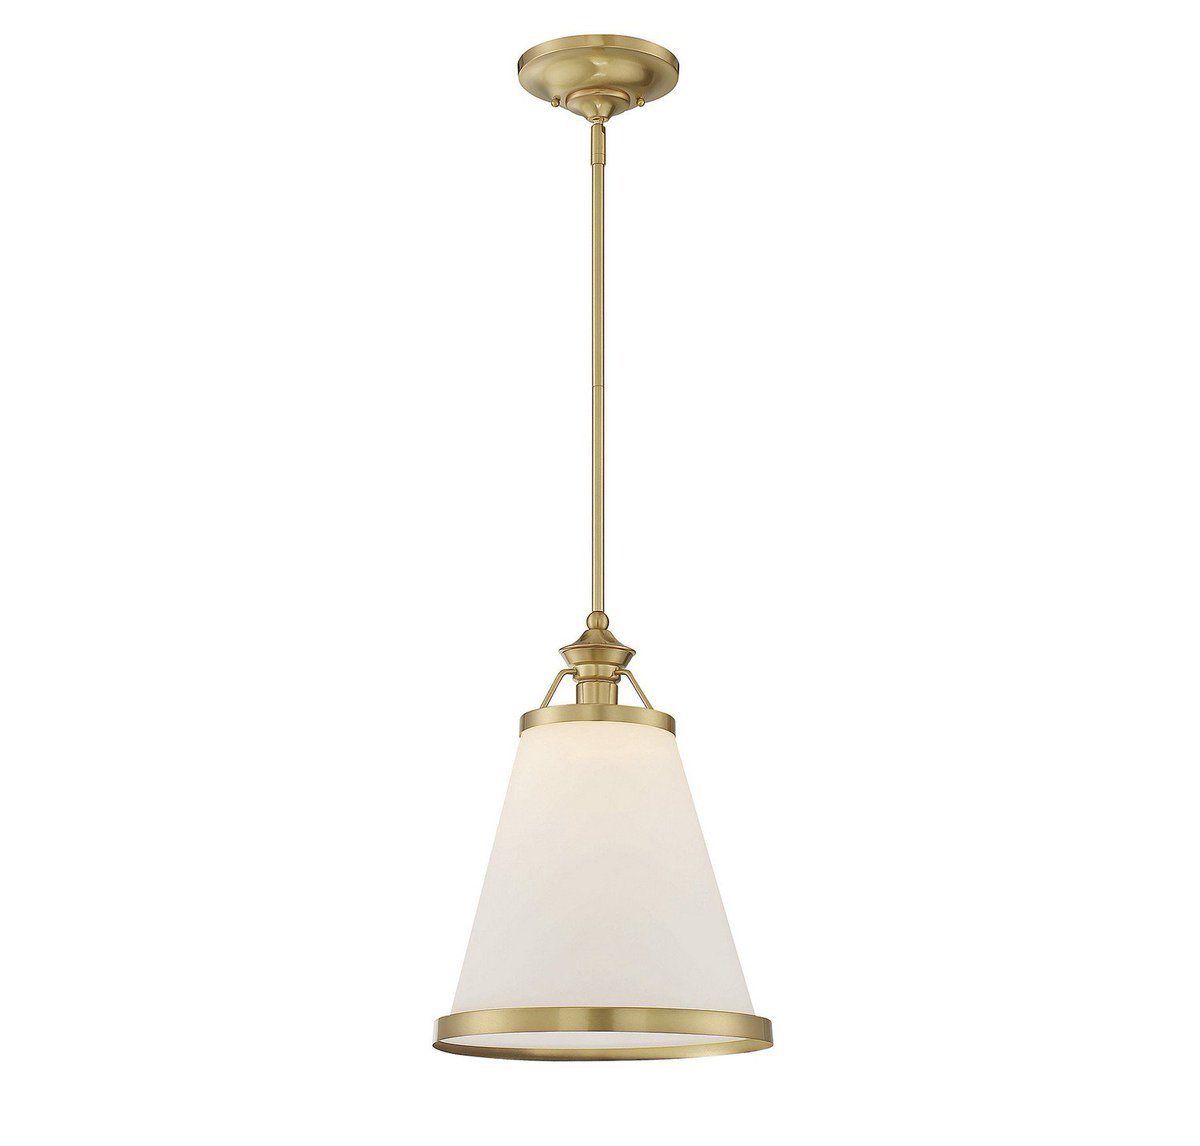 timeless lighting. Timeless Lighting. The Savoy House Ashmont One Light Pendant Gives You Lighting Style And I